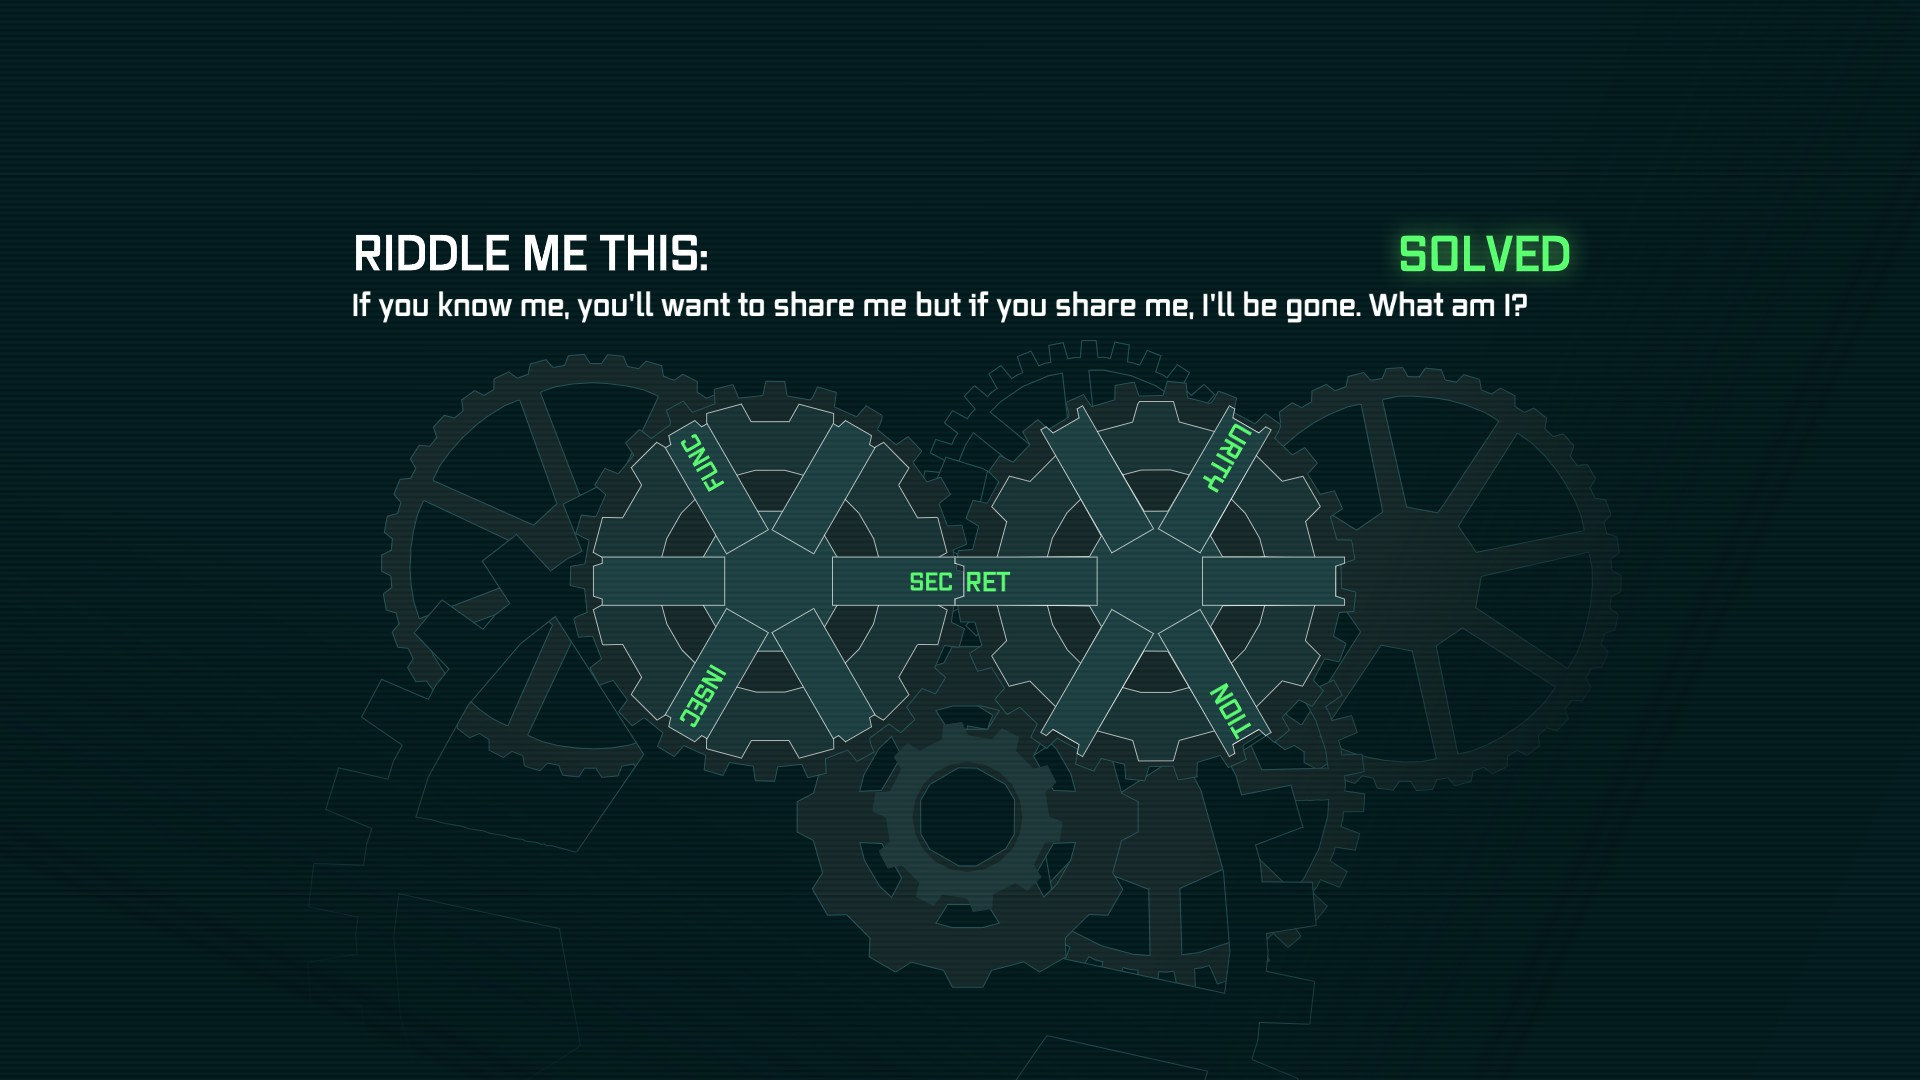 how to solve riddles in arkham city